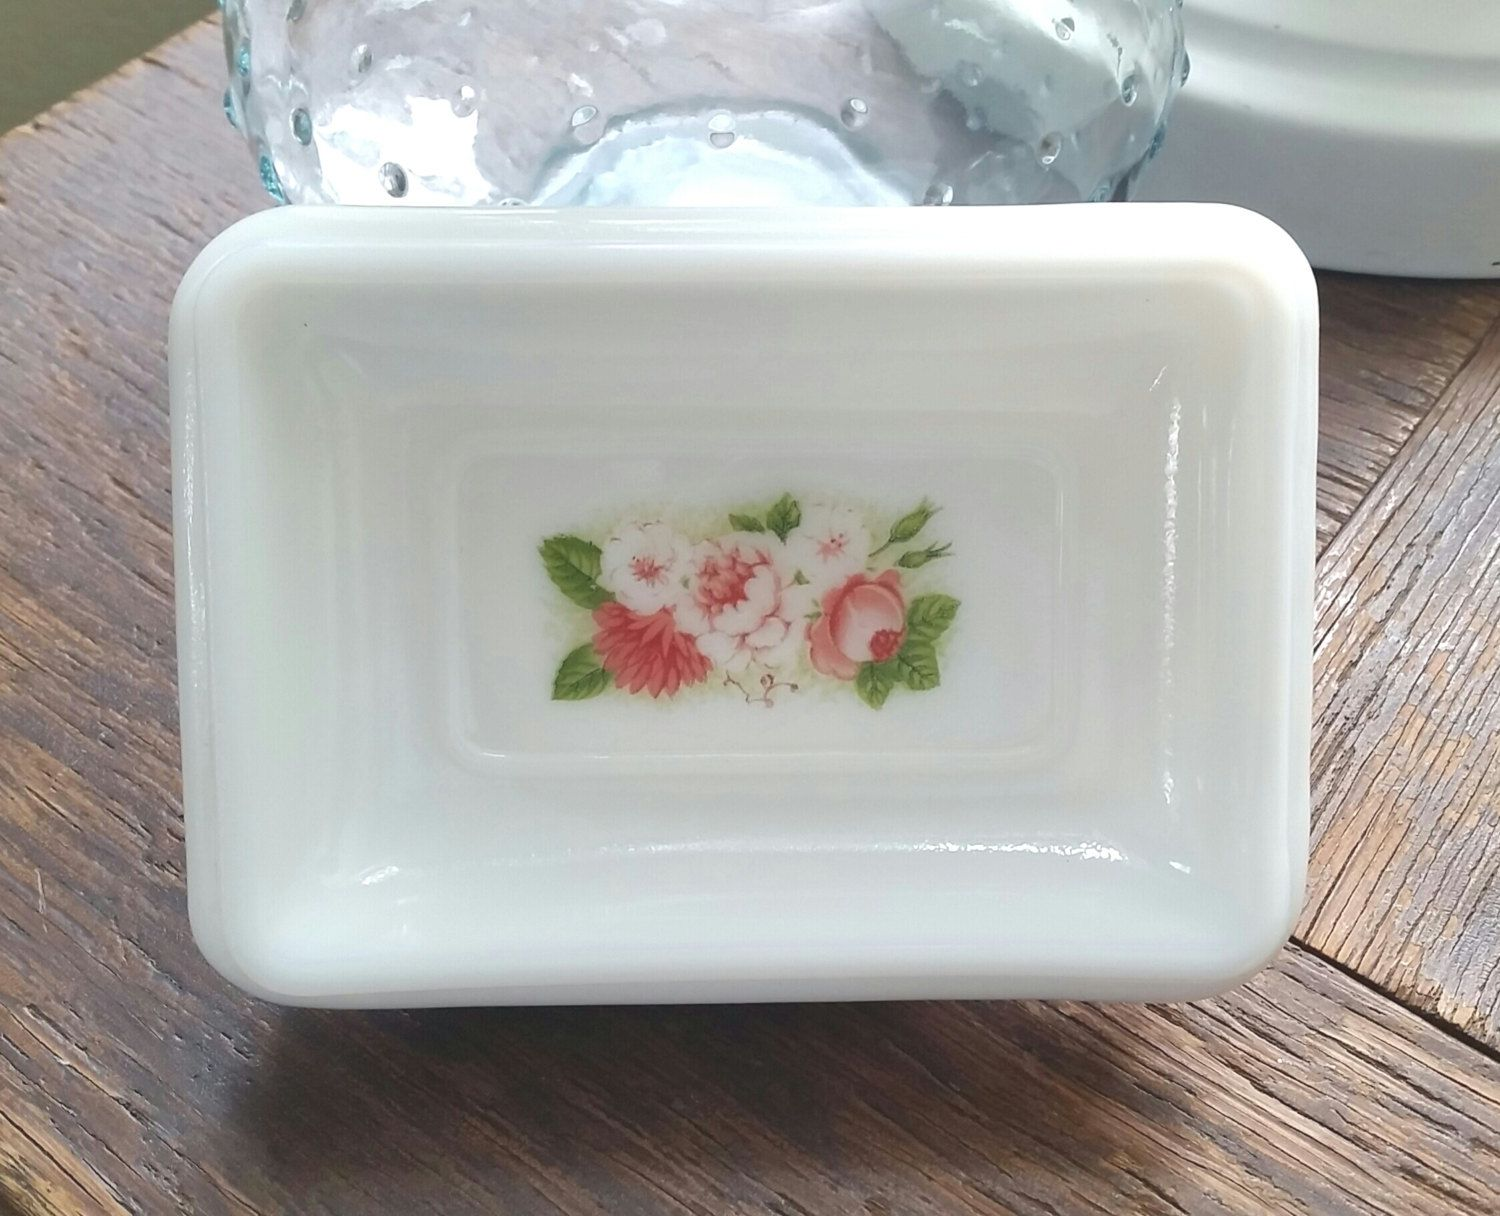 Captivating Vintage Avon Milk Glass Pedestal Floral Soap Dish. Vintage Bathroom  Accessories, White Soap Dish, Avon Home Decor, Flower Dish, Ring Dish By  LoveTheJunk On ...